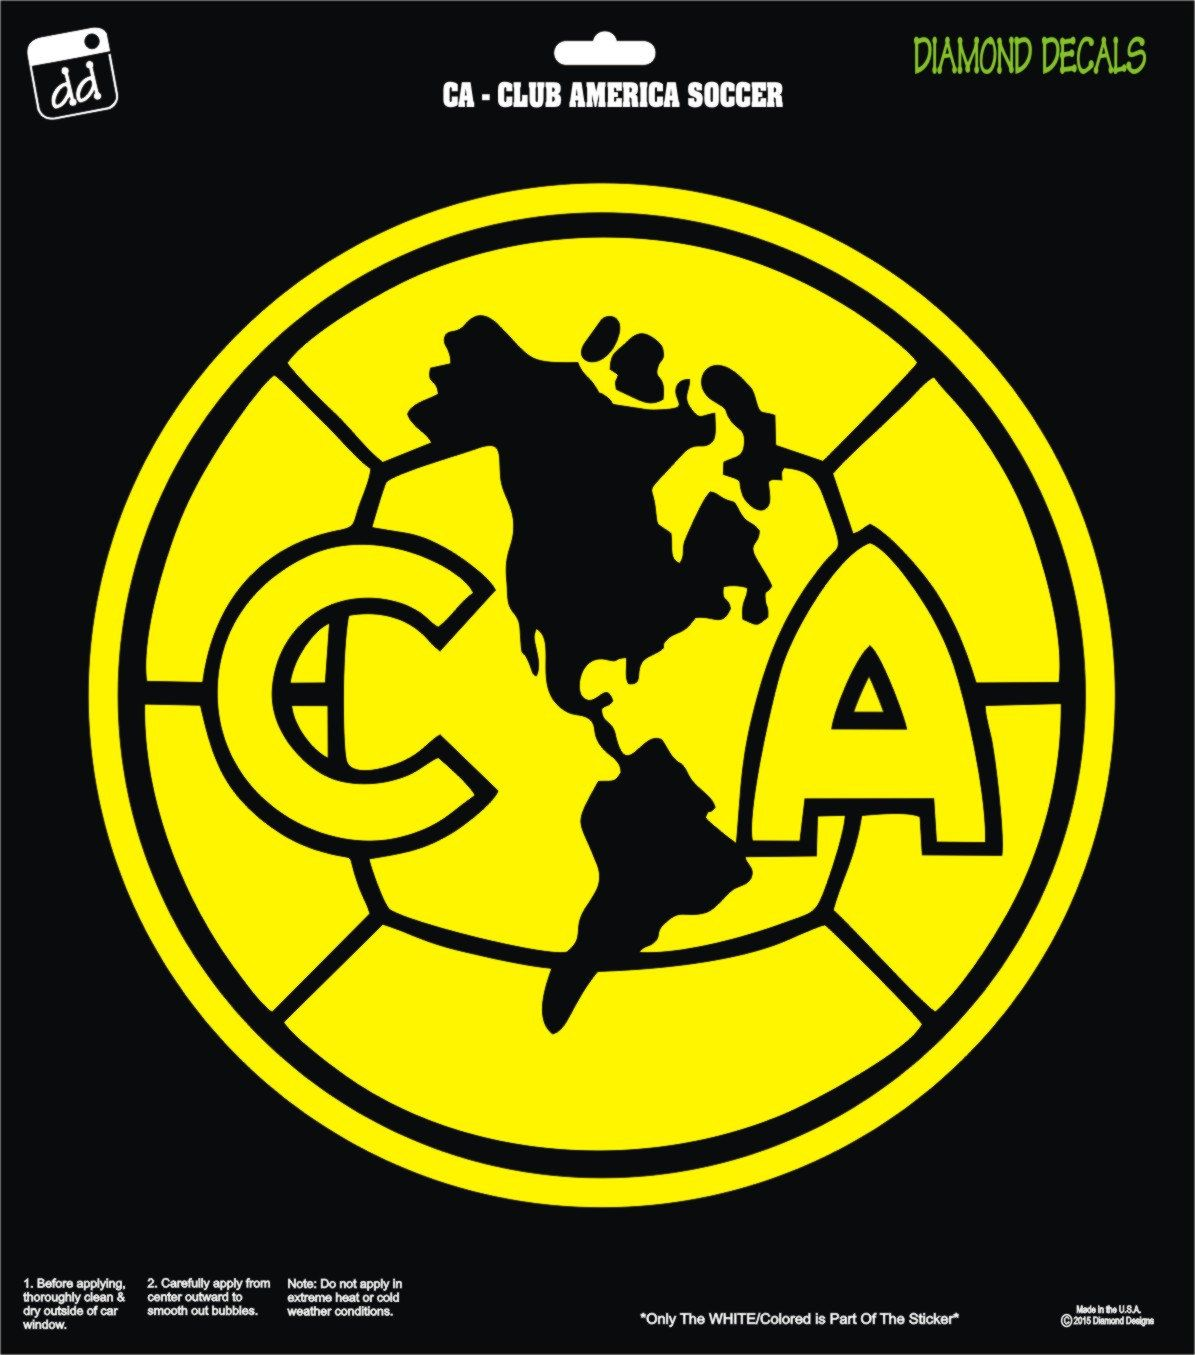 Club America Soccer Team Decal Campeon Aguilas Mexico Vinyl Car Truck Window Laptop Club America Team Decal Diamond Decals